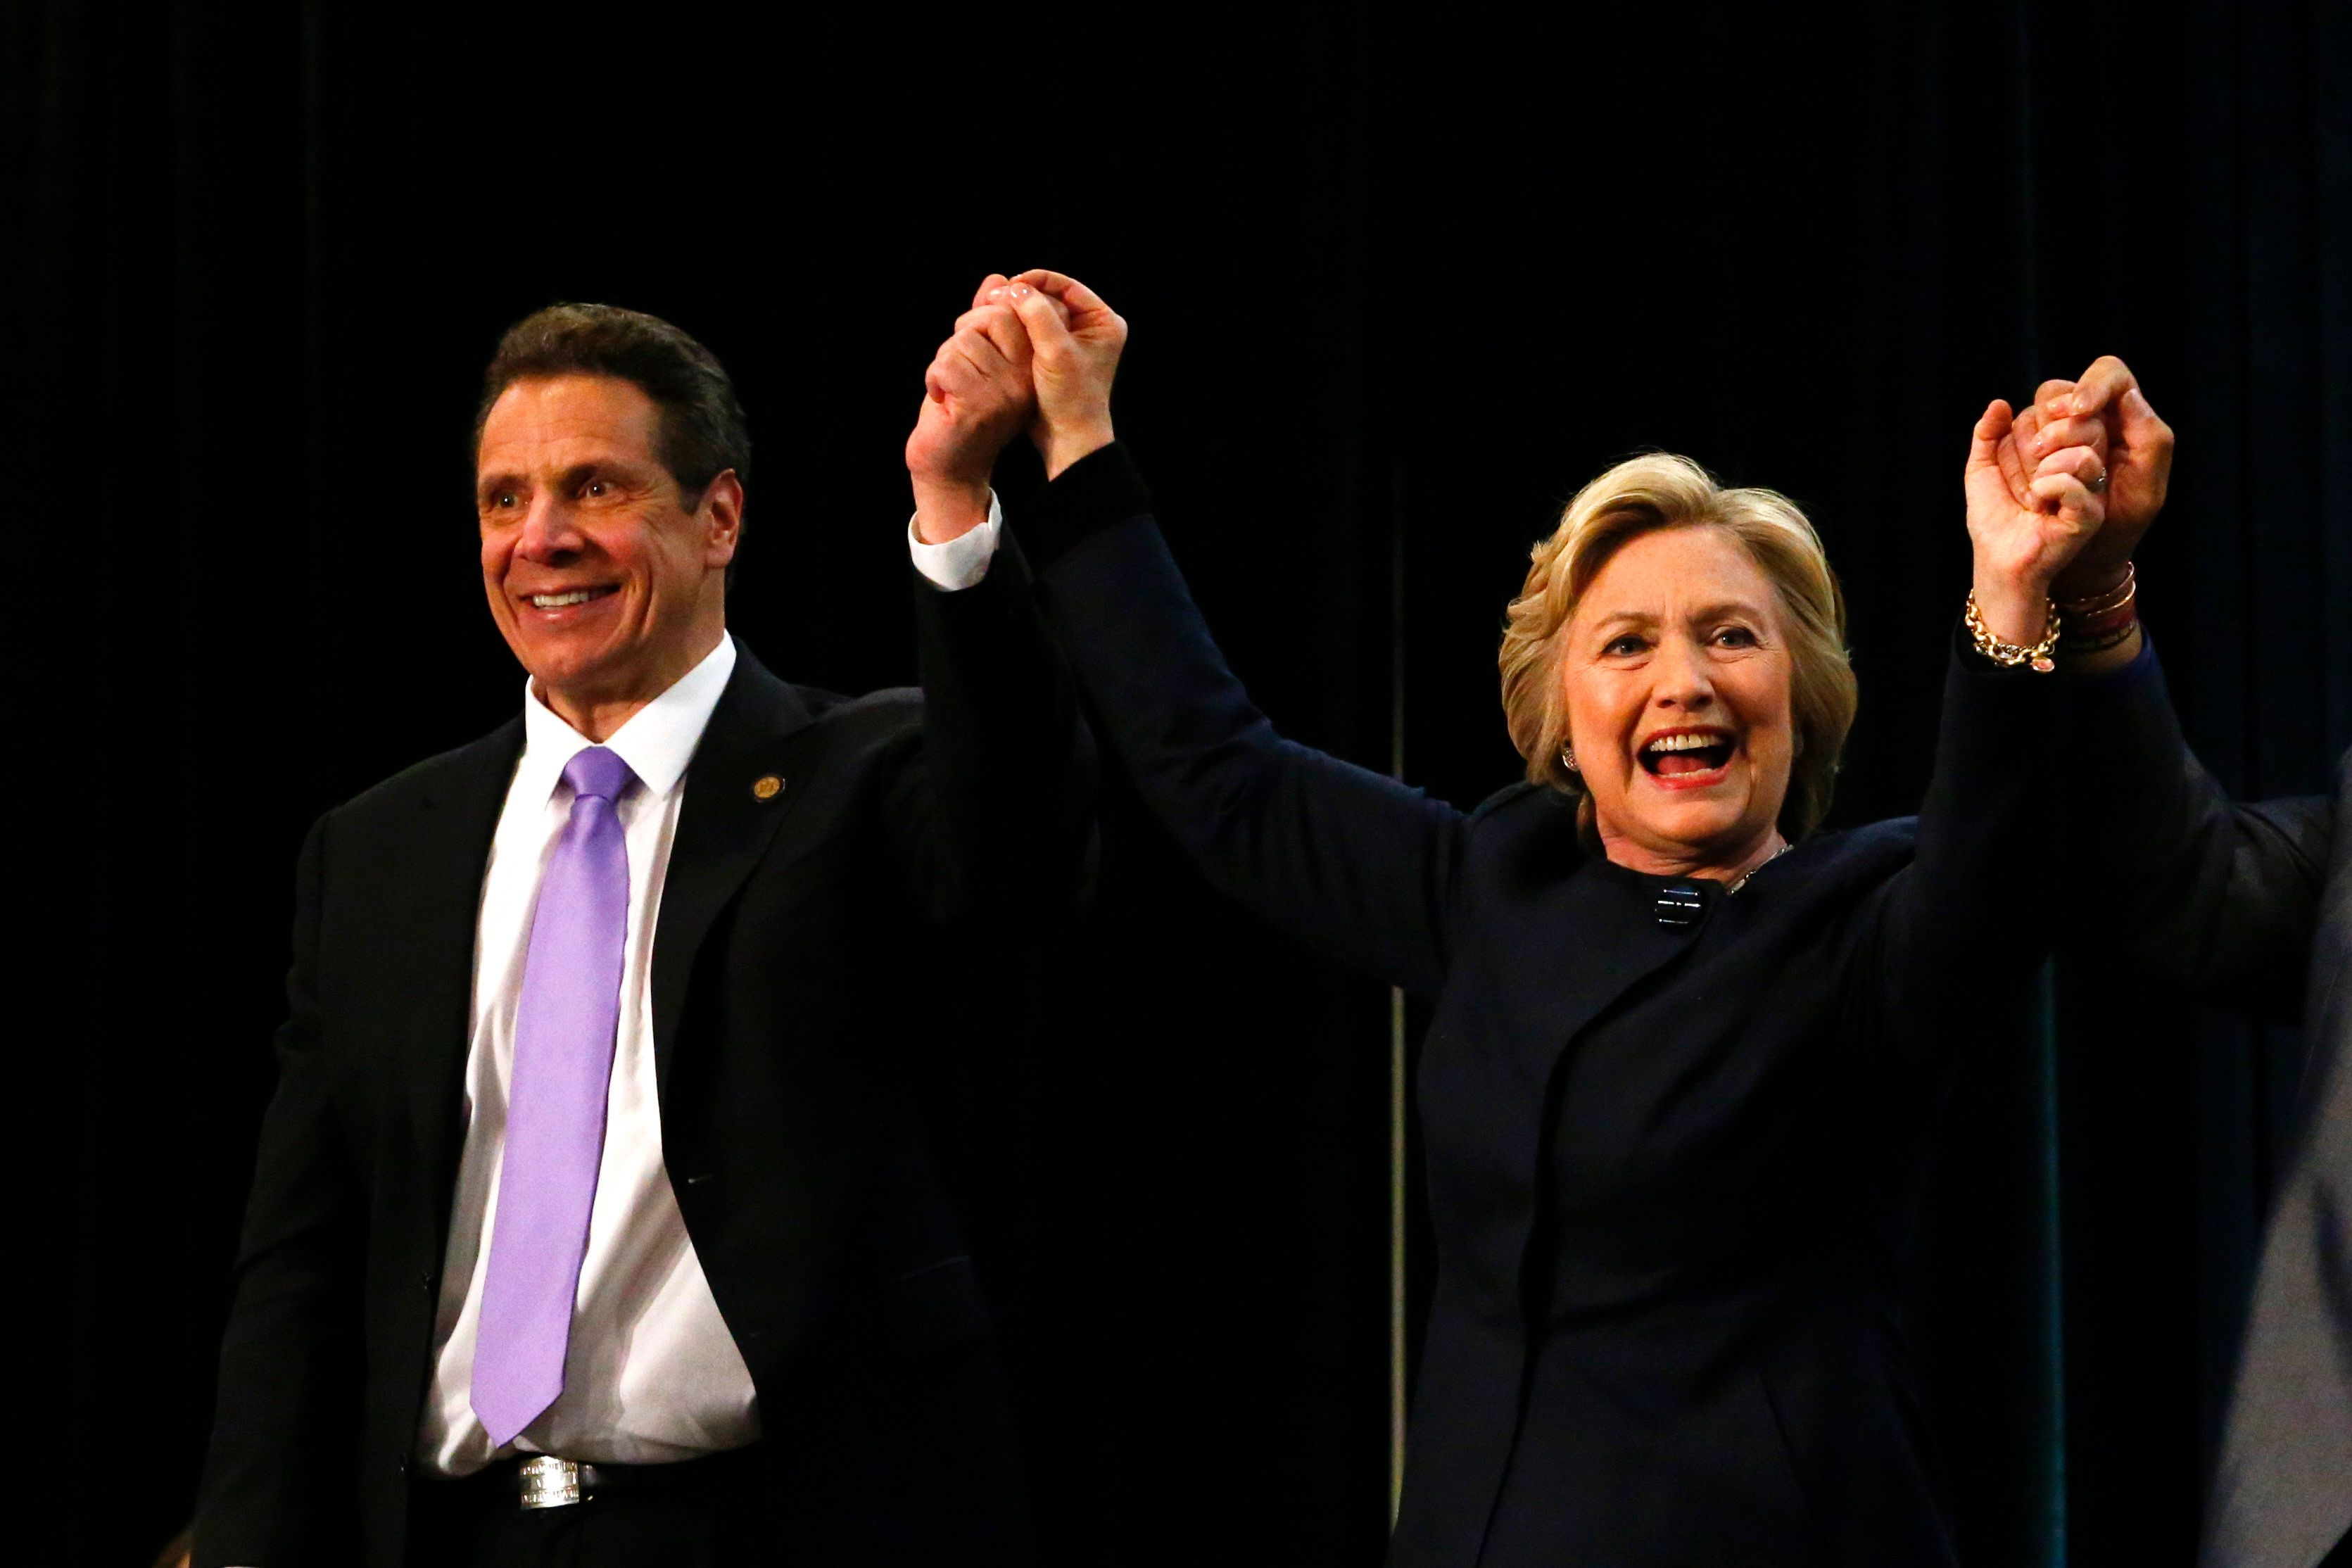 Democratic presidential candidate Hillary Clinton (R) holds the hand of New York Governor Andrew Cuomo during the 'victory rally for $15 minimum wage and paid family leave' at the Javitz Center in New York on April 4,2016.  / AFP / KENA BETANCUR        (Photo credit should read KENA BETANCUR/AFP/Getty Images)